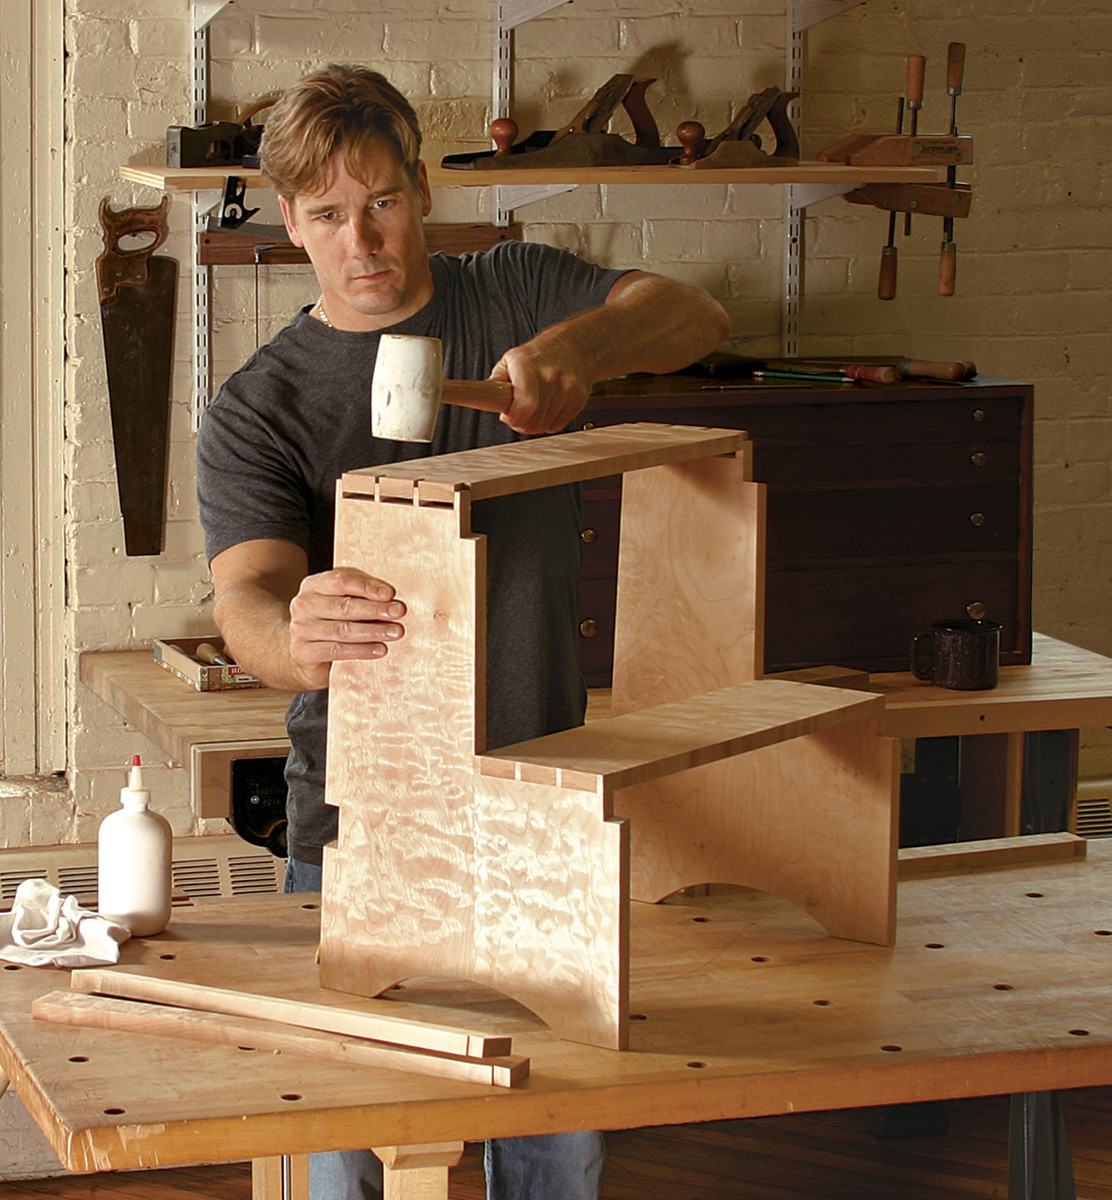 Best ideas about DIY Wood Work . Save or Pin New Yankee Workshop Series Ends FineWoodworking Now.